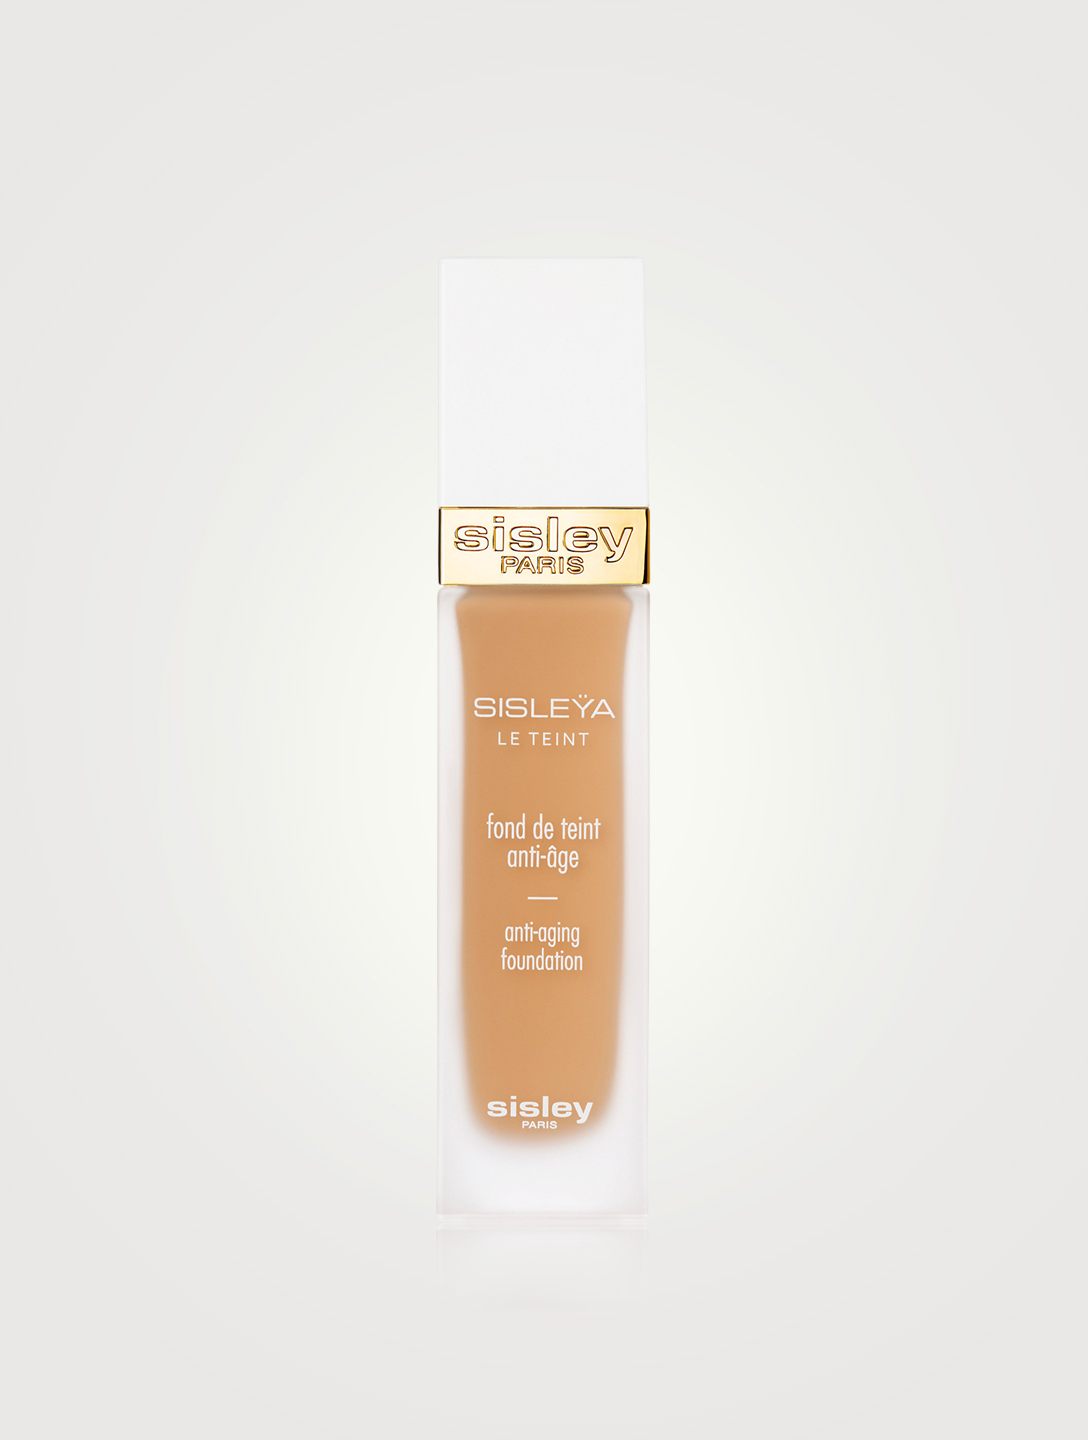 SISLEY-PARIS Sisleÿa Le Teint Anti-Aging Foundation Beauty Neutral